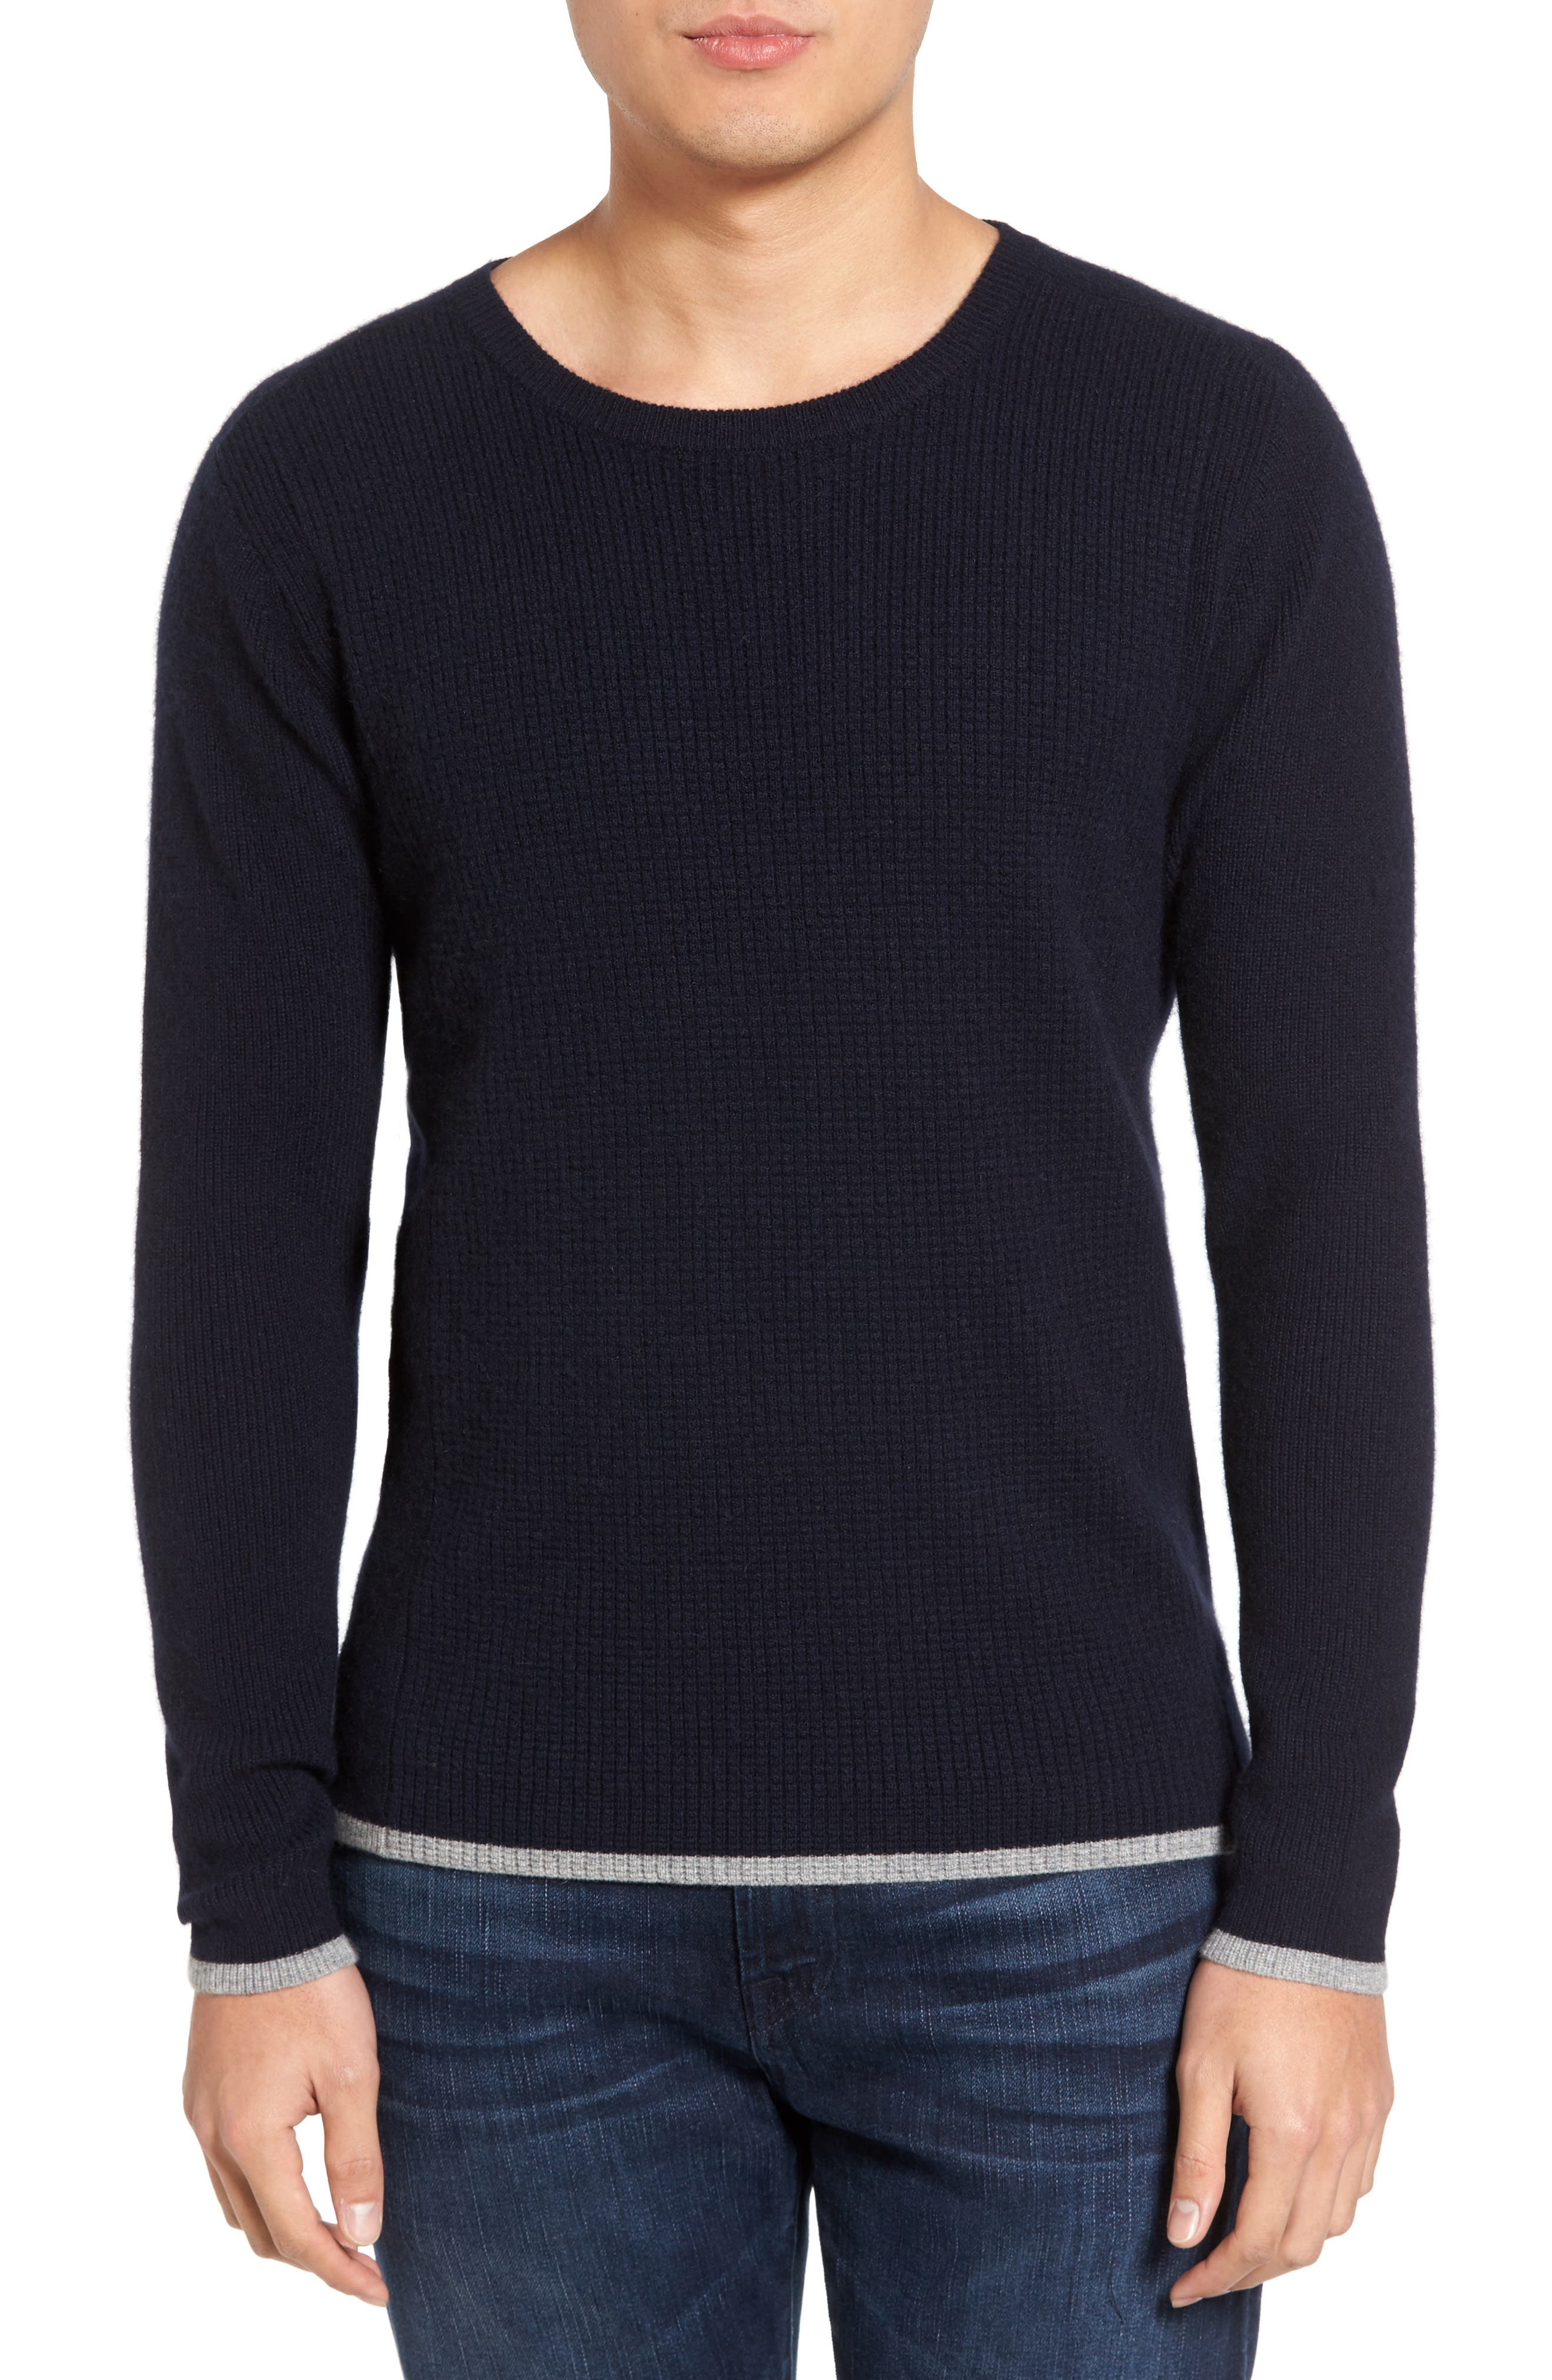 Jagger01 Tipped Cashmere Sweater,                         Main,                         color, Navy